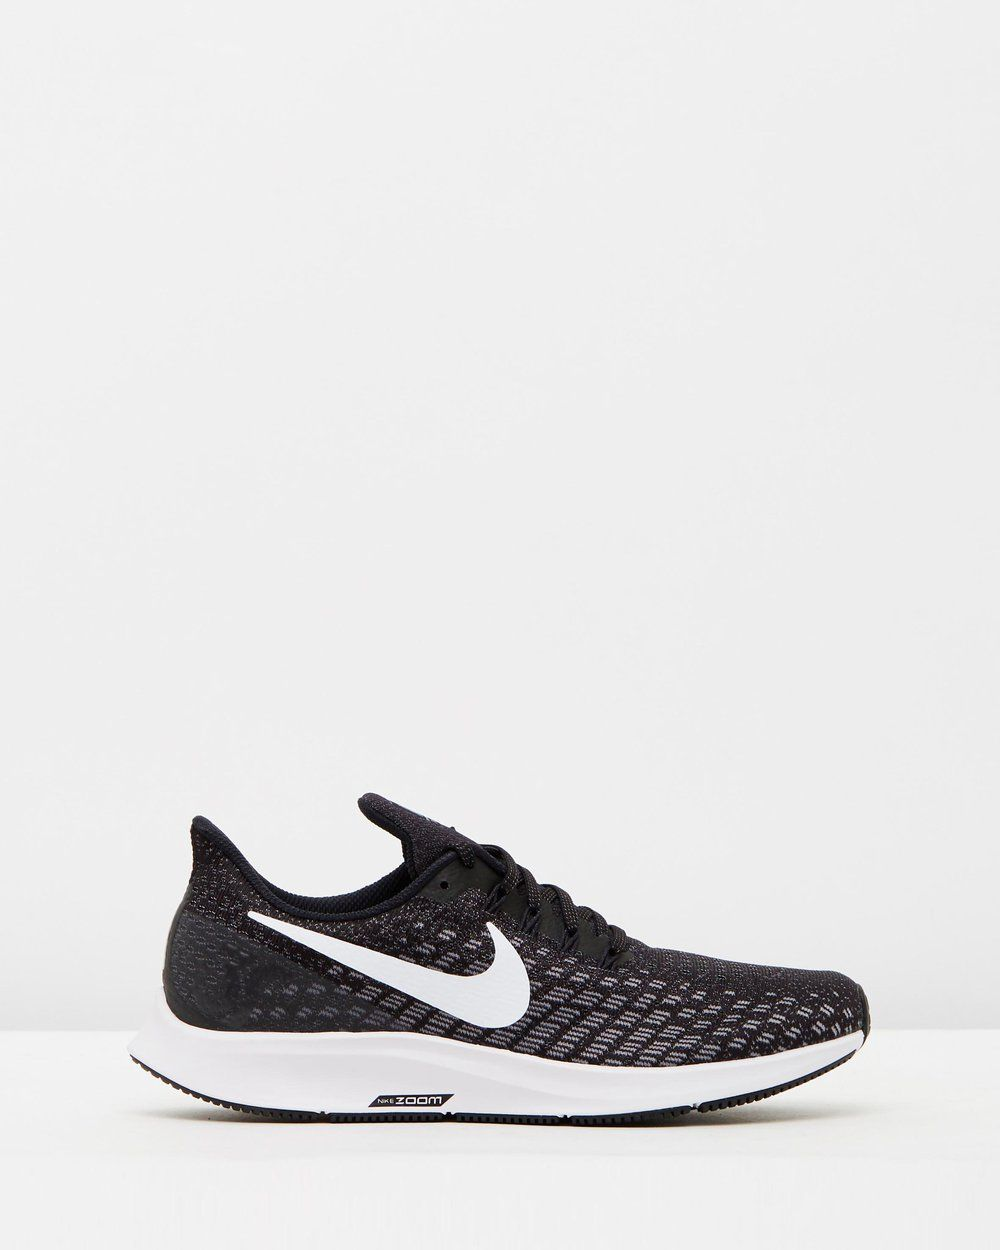 ebb19a18ed4c1 The Nike Air Zoom Pegasus 34 Mo Farah - Learn More about this ...